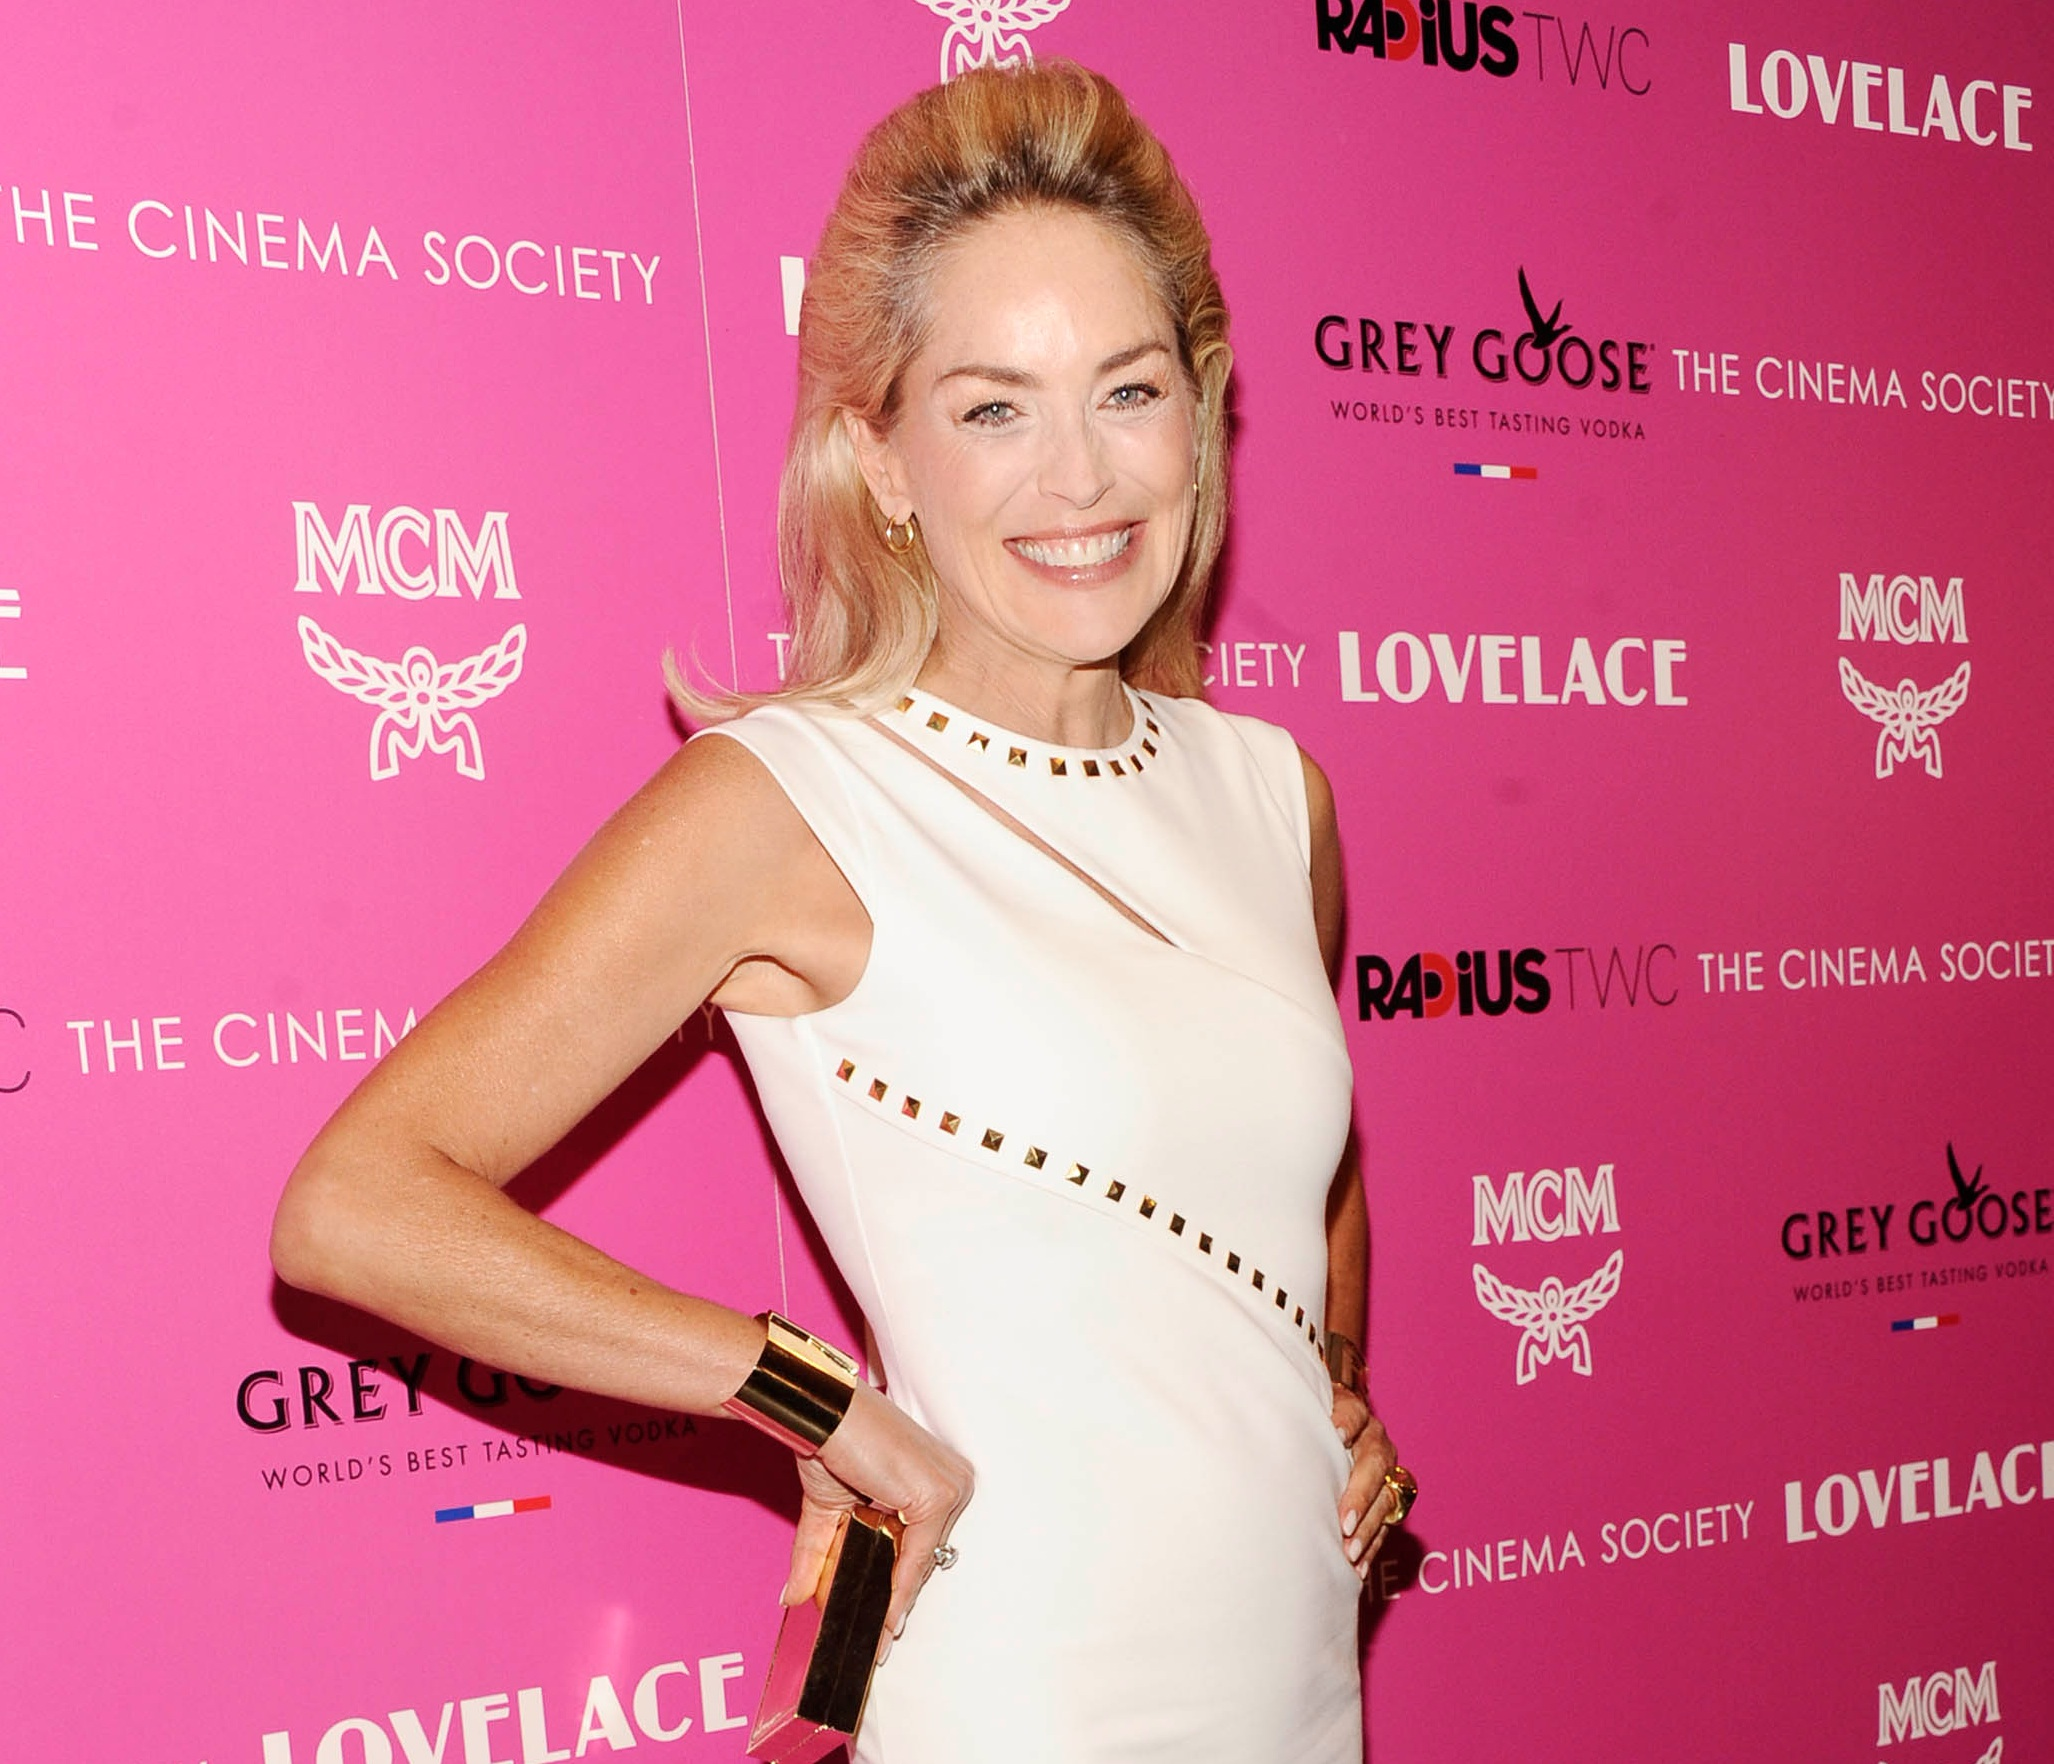 Sharon Stone On Entering a New Phase of Her Career With